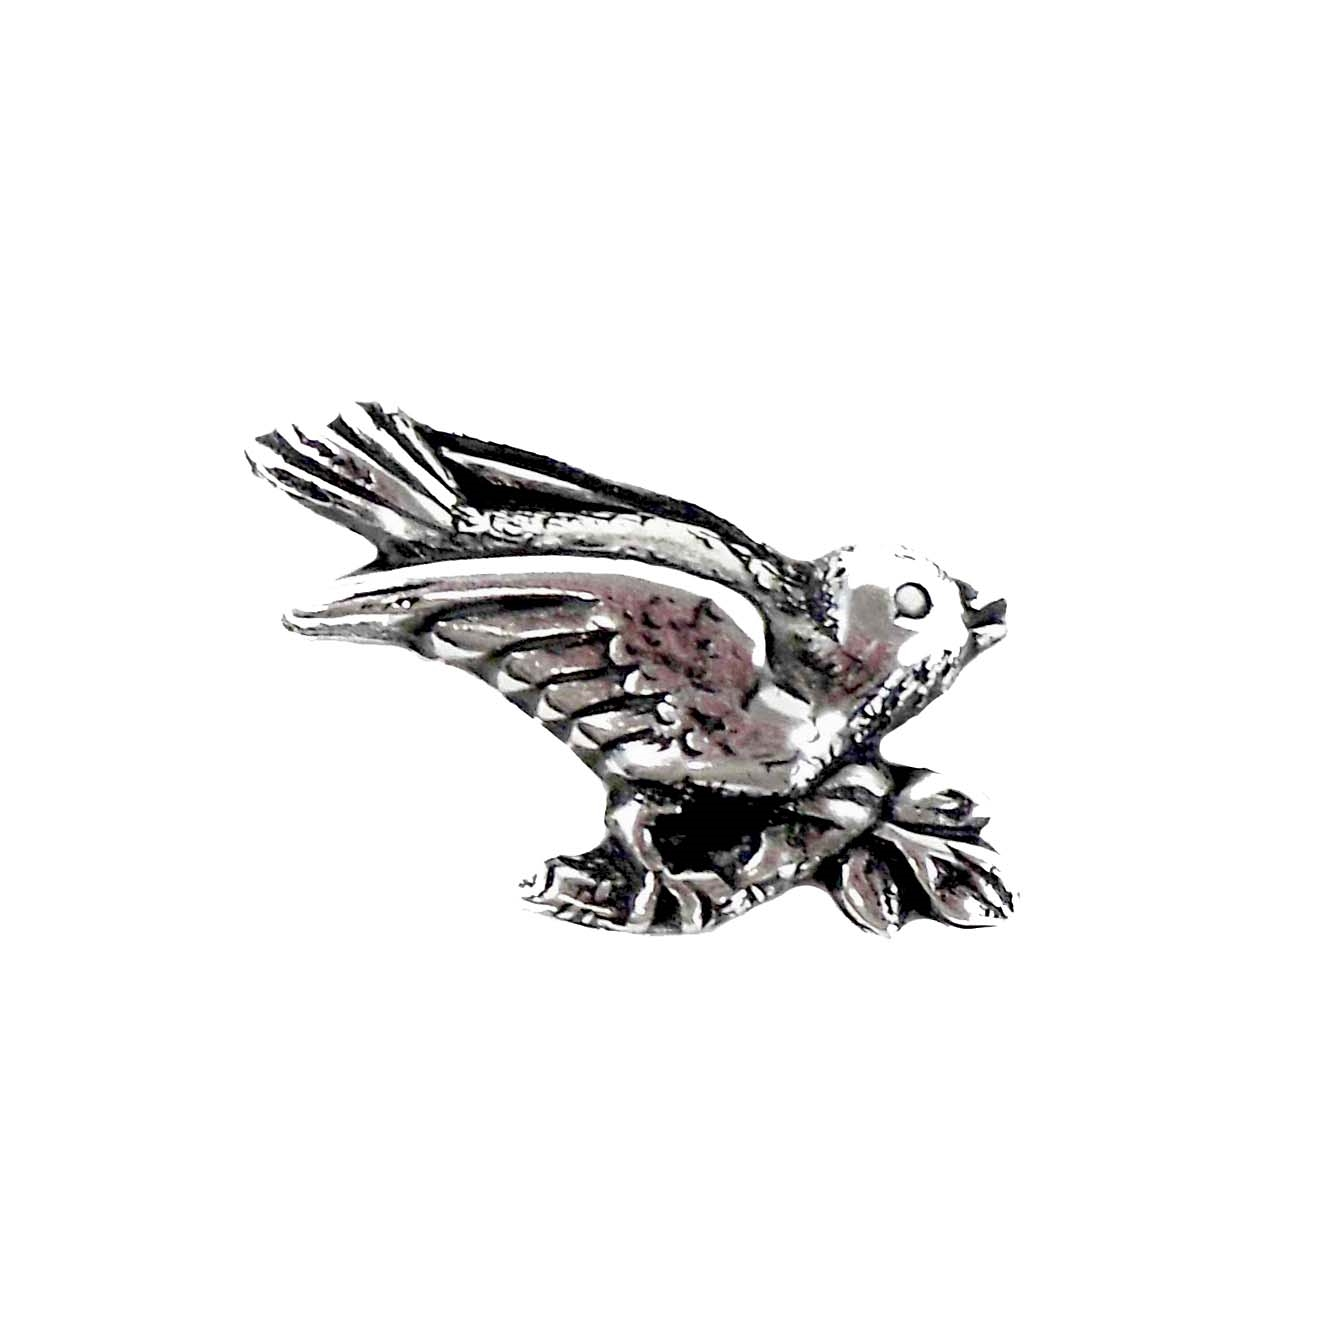 brass birds, singing birds, antique silver, jewelry supplies, 04654, silverware silverplate, Bsue Boutiques, bird, birds, animals, feathered friends, bird stampings, US made, jewelry making supplies, nickel free, bsueboutiques